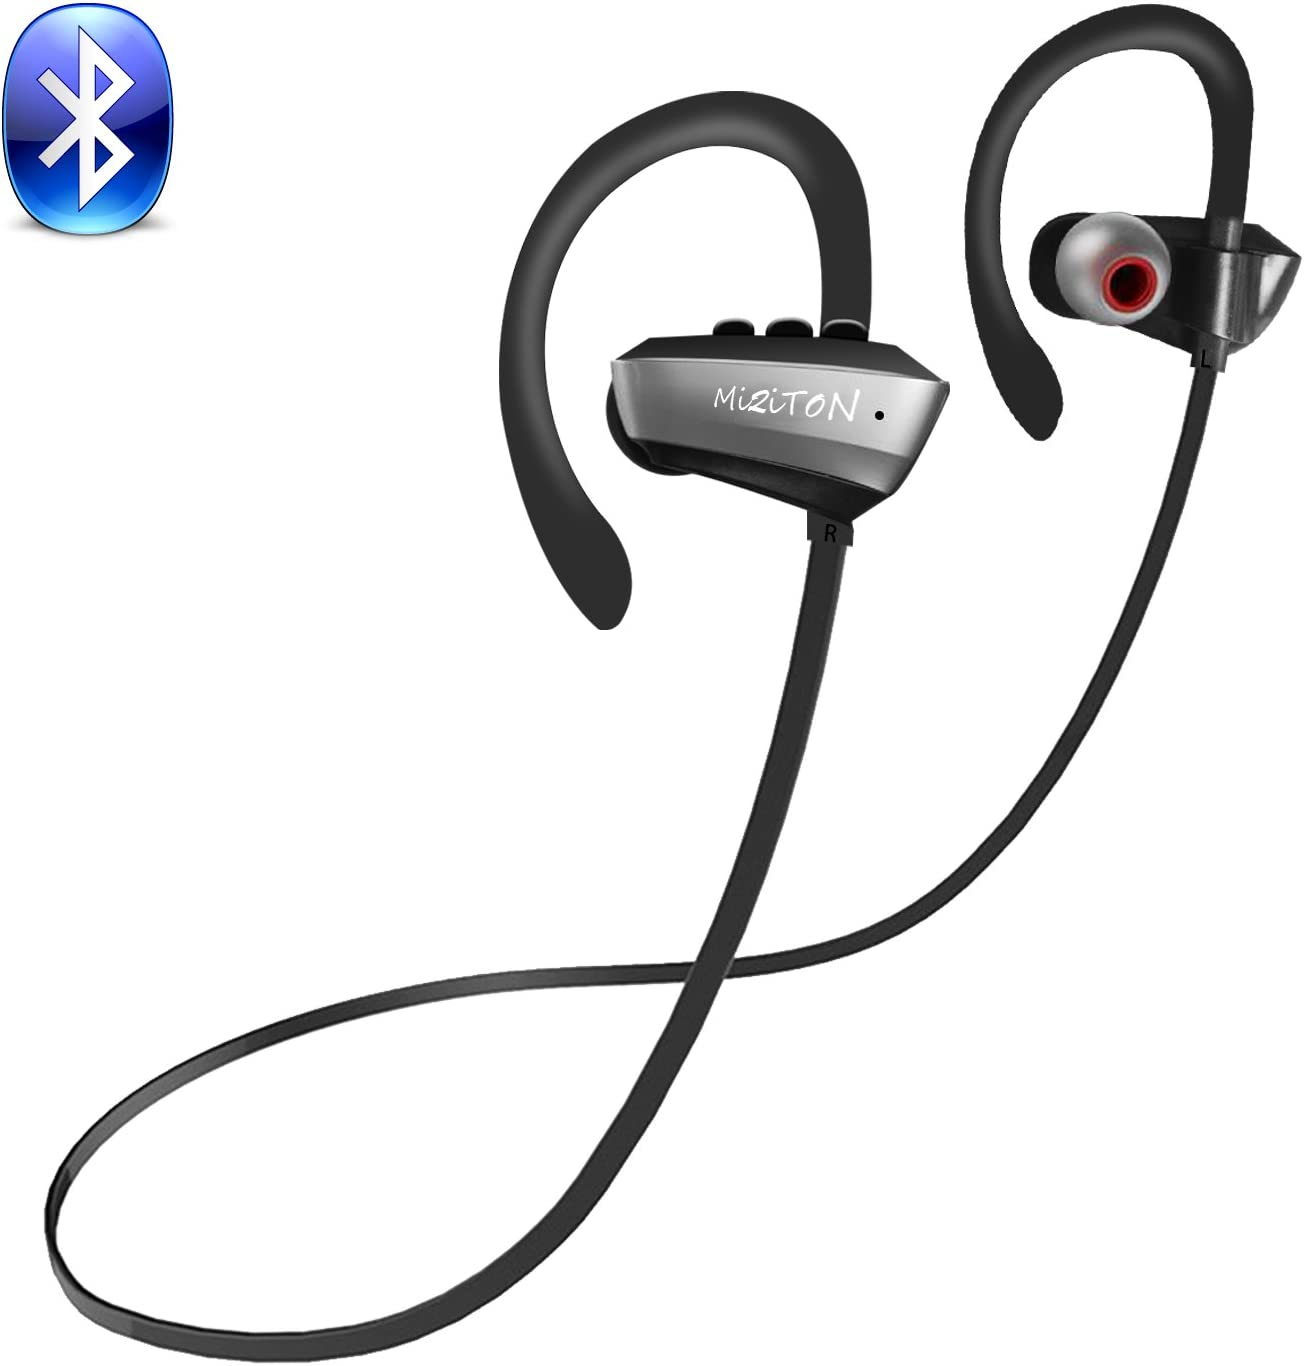 MiZiTON U7P Bluetooth Headphones Real IPX7 Waterproof and Sweatproof Wireless Sports Headphones with Microphone for Gym Running Exercise Driving 8 Hours Battery Noise Cancelling Headphones (Gray)